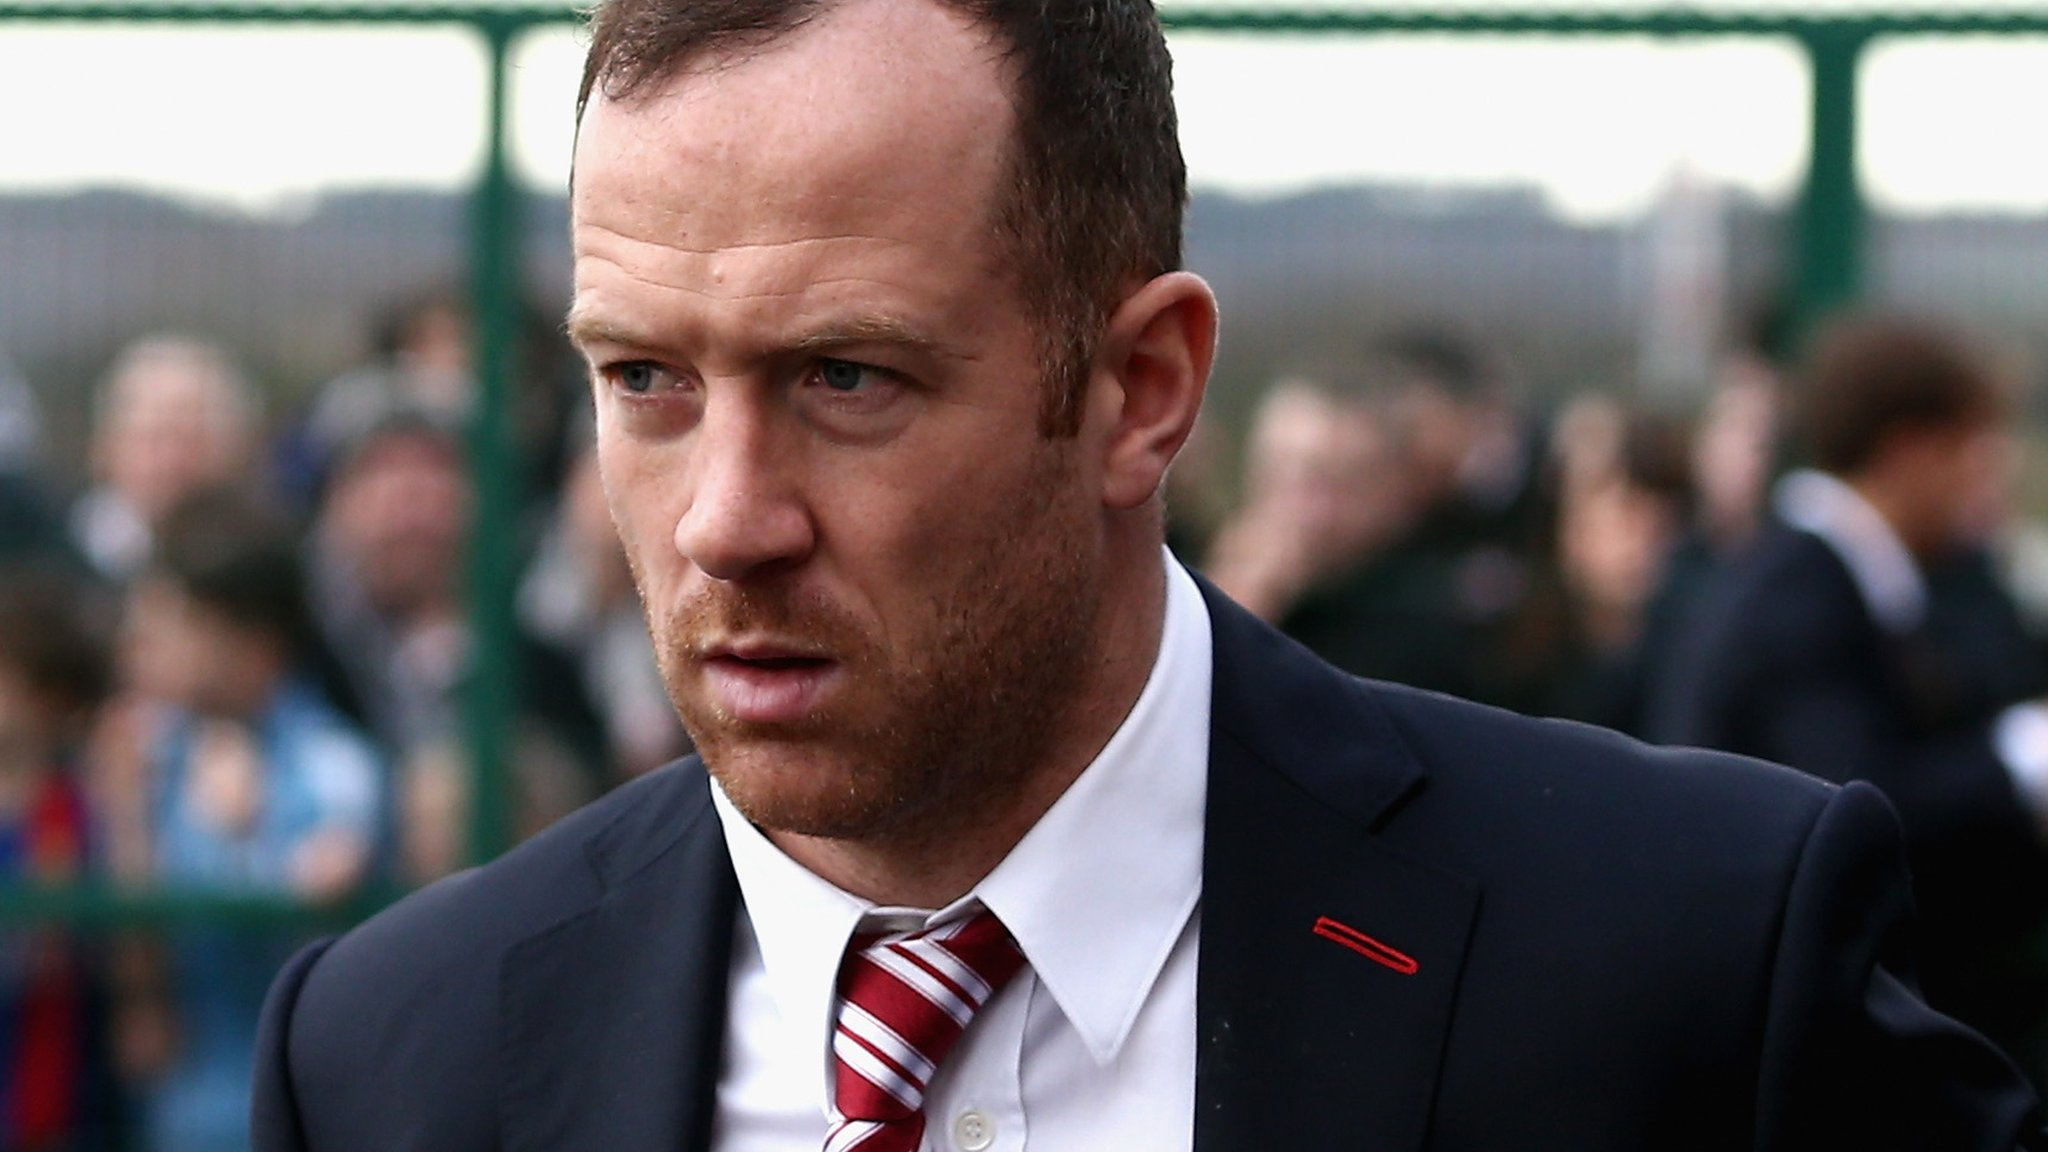 Charlie Adam: 'My brother thought dad was wrapping presents'